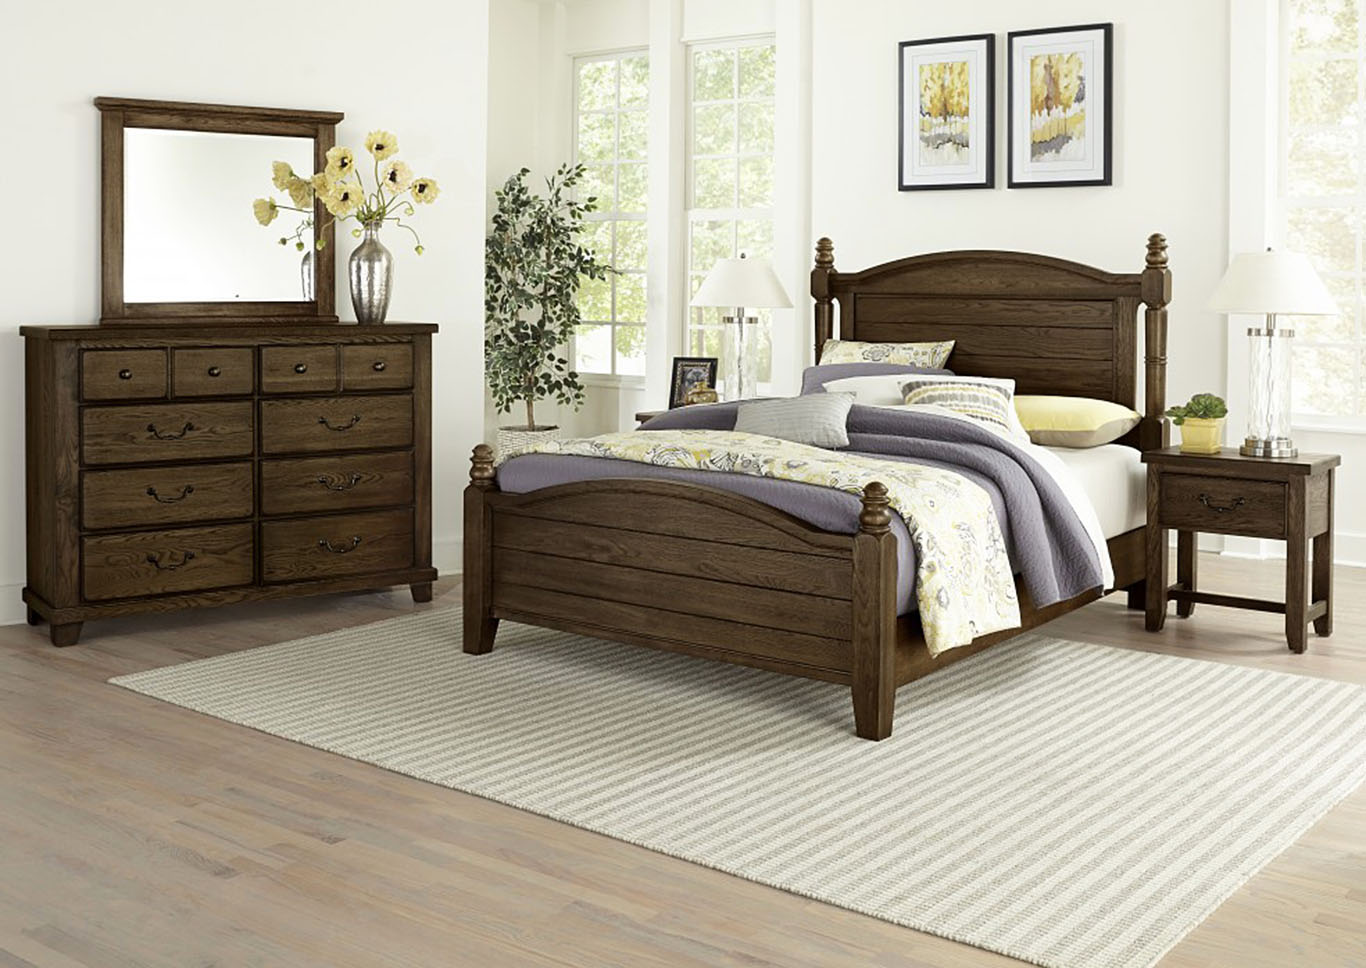 American Molasses Oak Queen Poster Bed,Vaughan-Bassett